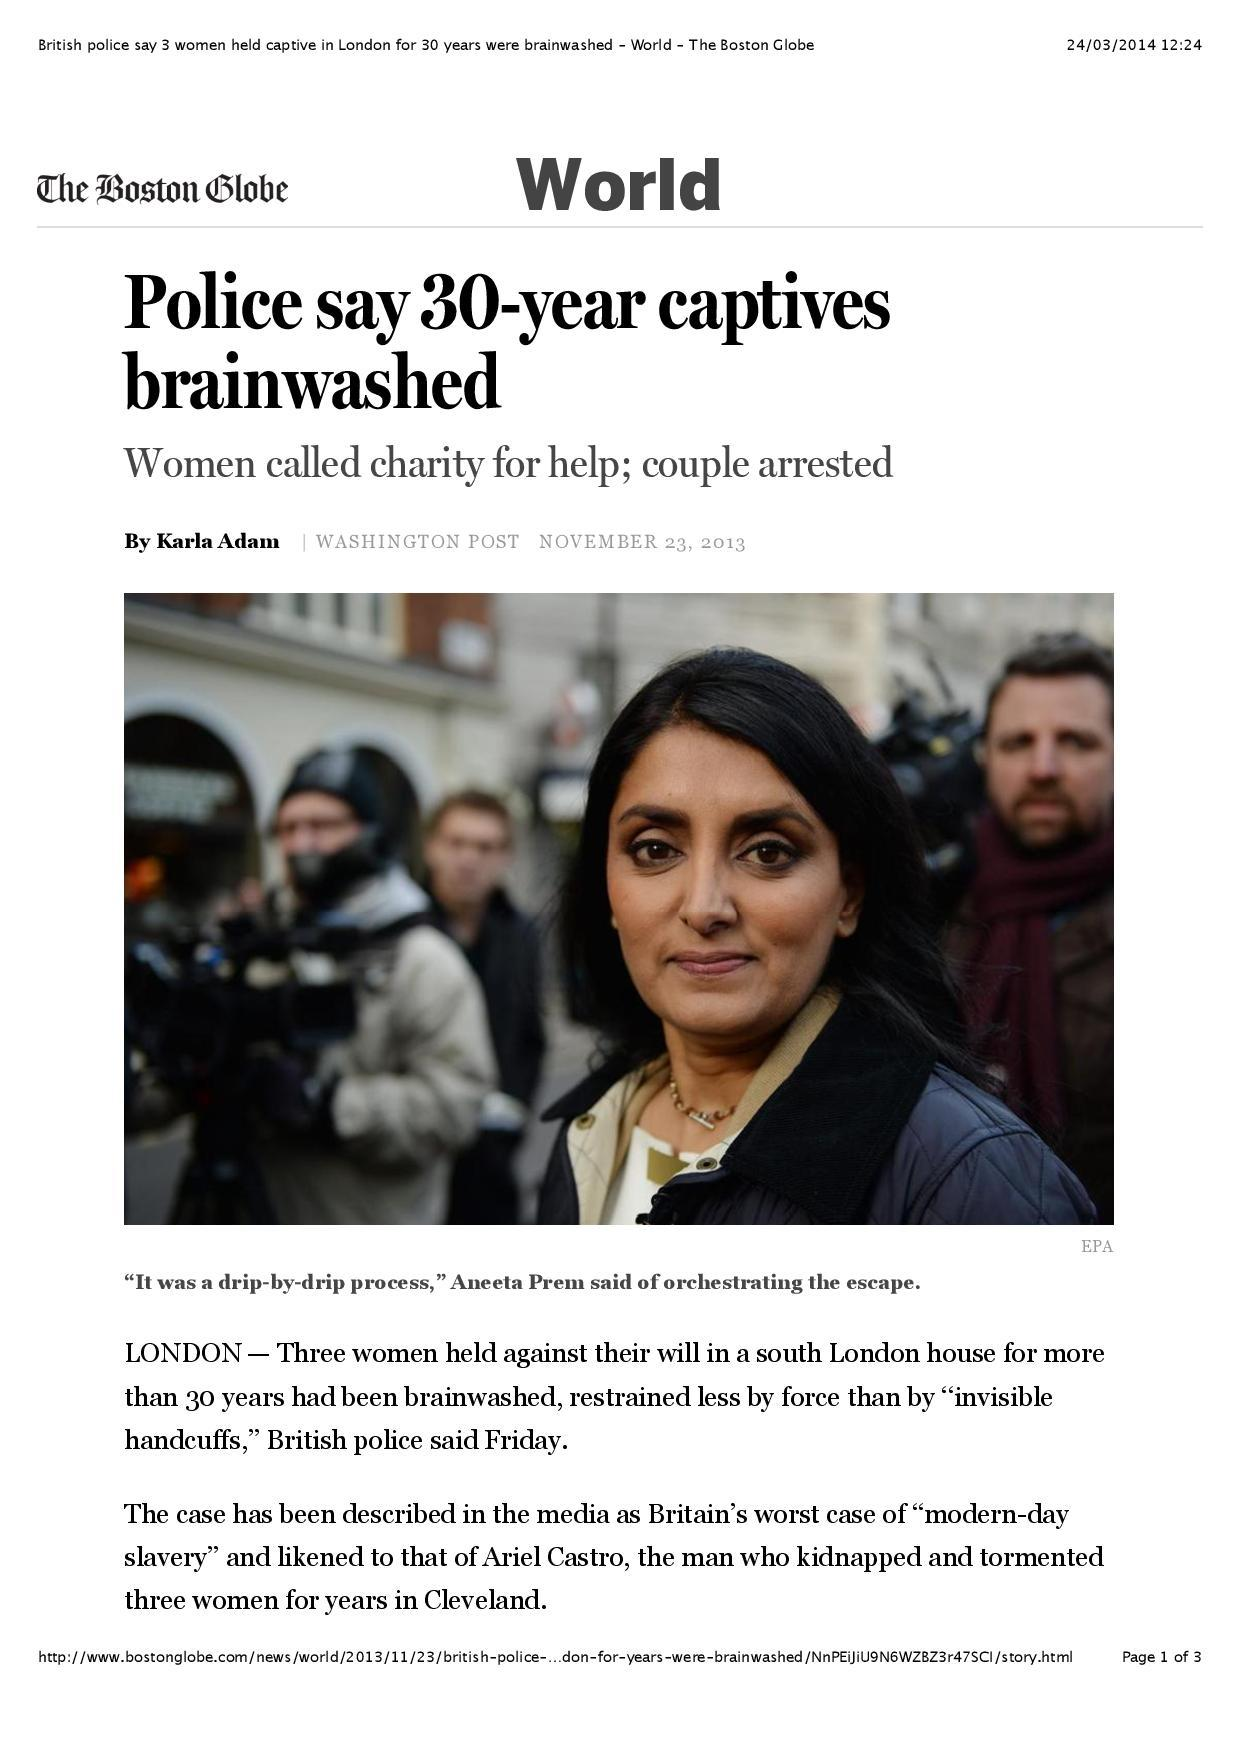 boston-globe-british-police-say-3-women-held-captive-in-london-for-30-years-were-brainwashed-world-the-boston-globe-page-001